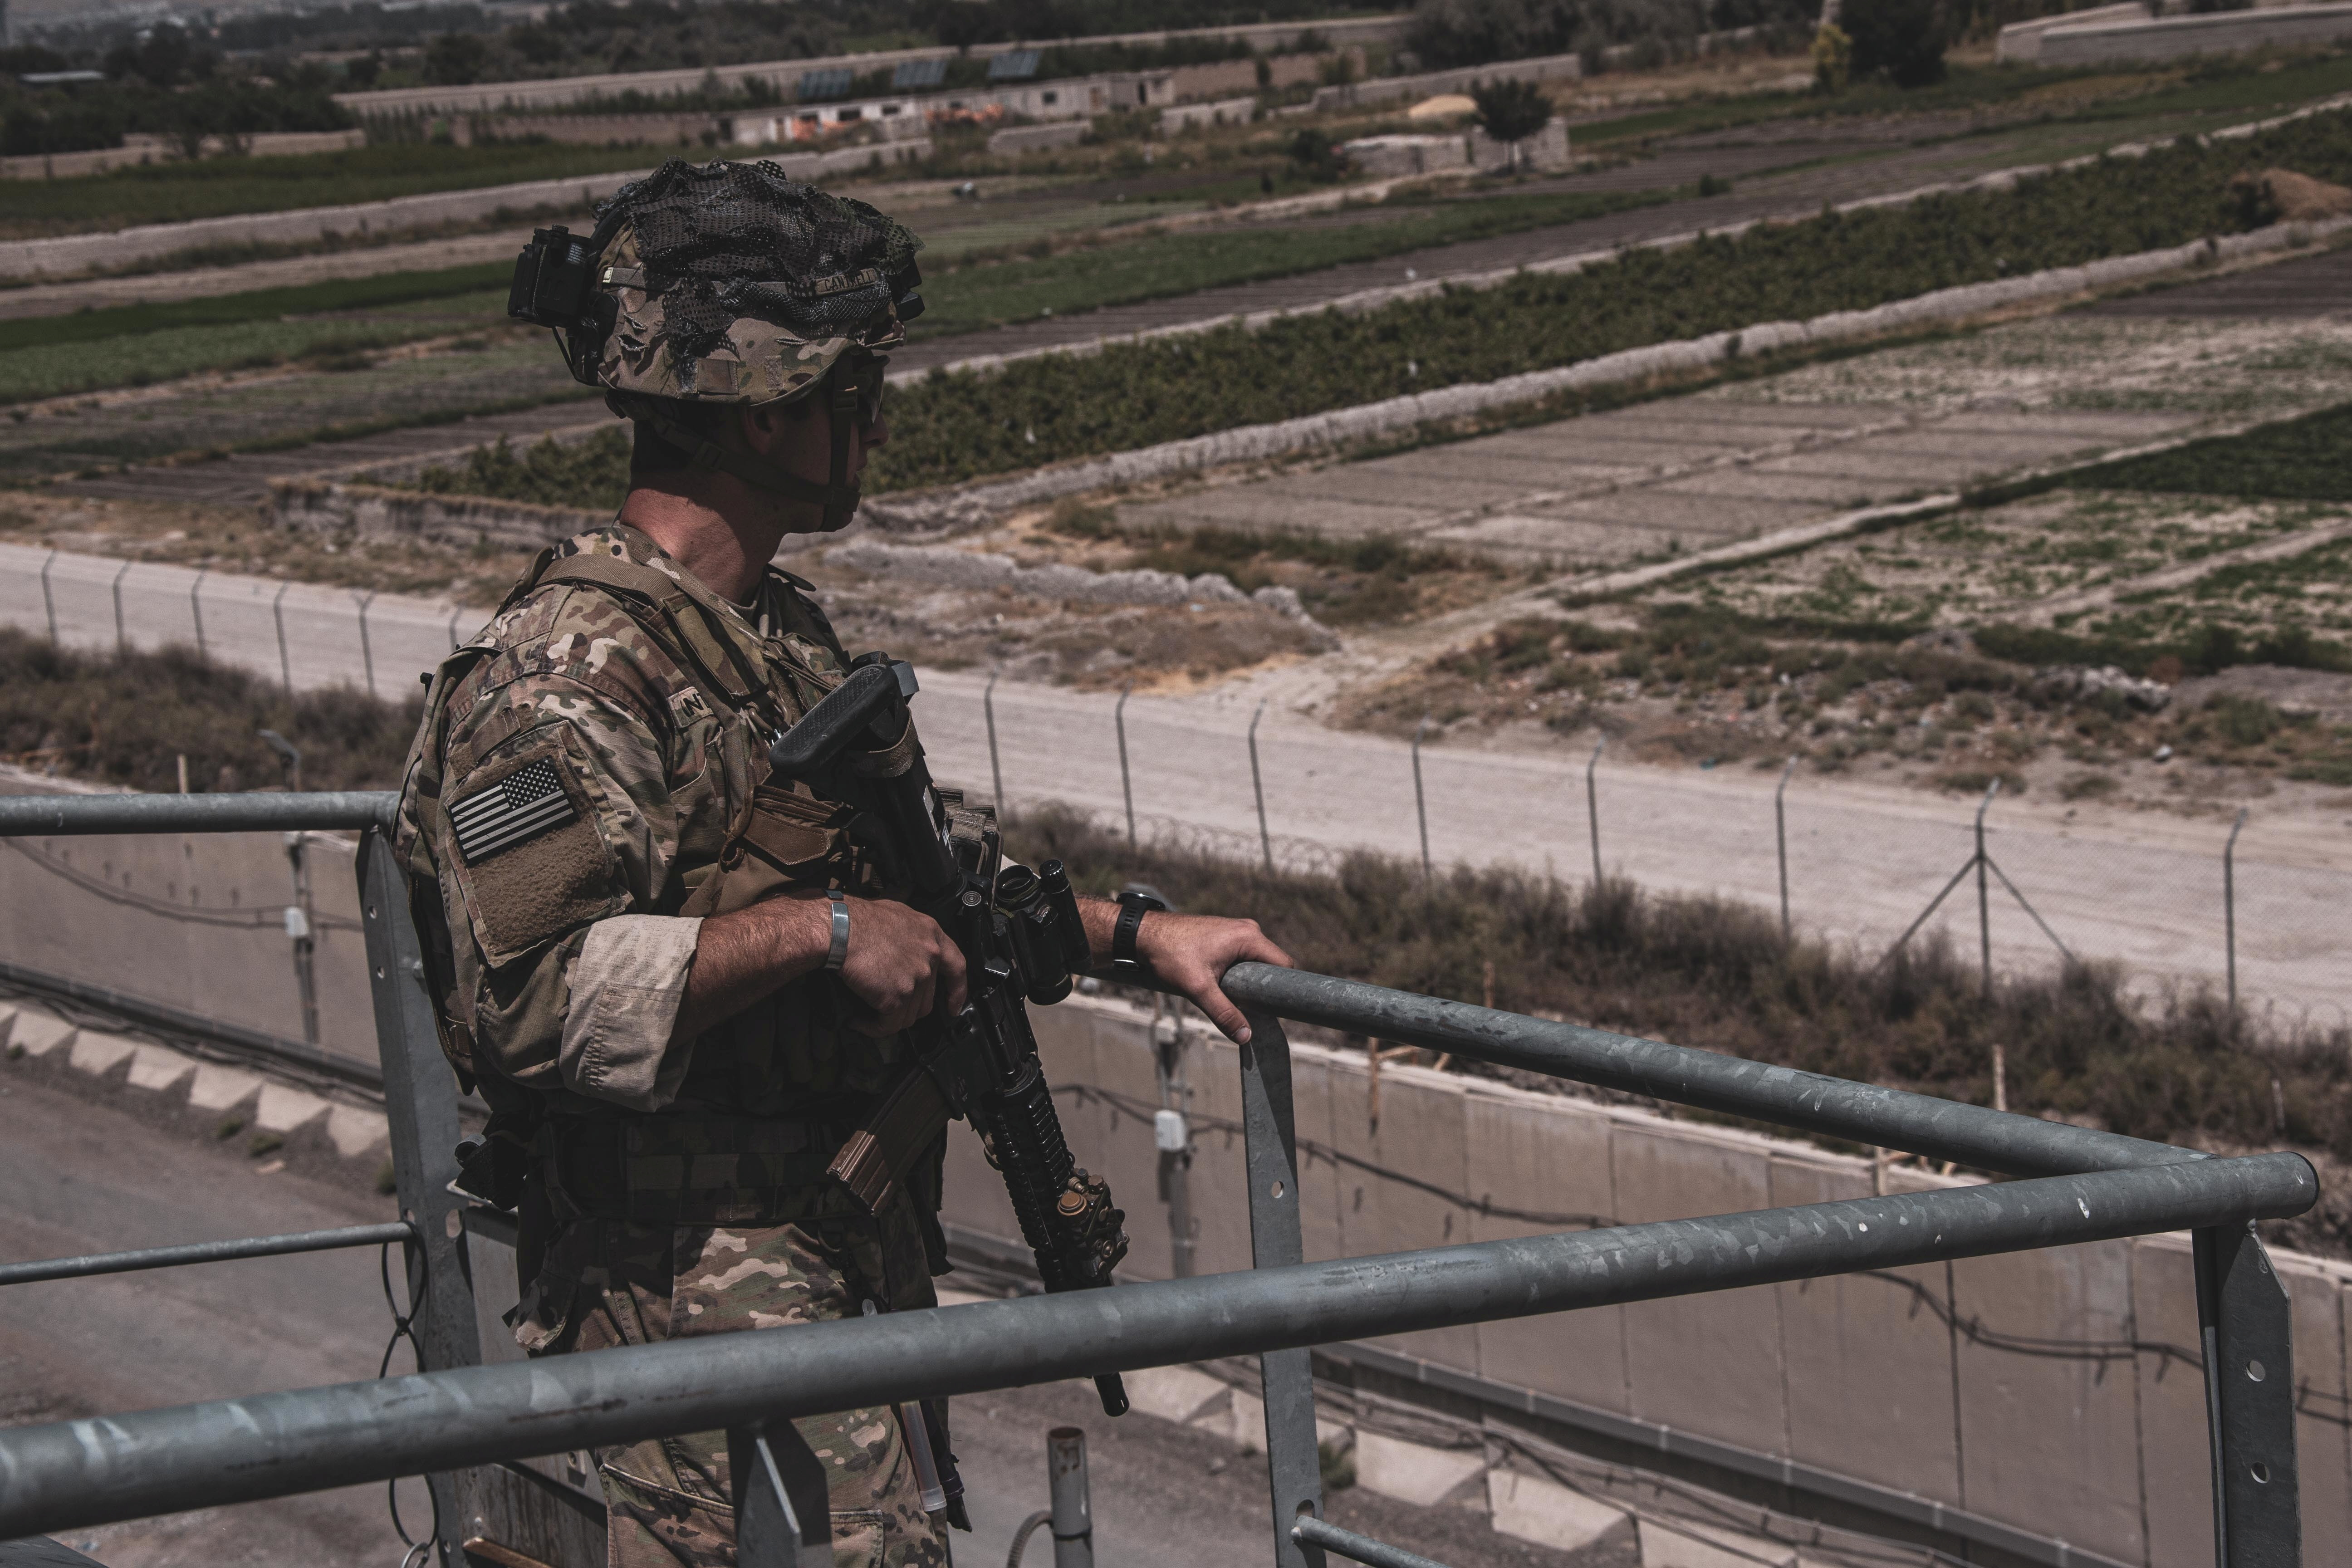 A soldier assigned to the 82nd Airborne Division provides security at Hamid Karzai International Airport, Afghanistan, August 21, 2021. Picture taken August 21, 2021.  U.S. Marine Corps/Cpl. Davis Harris/Handout via REUTERS